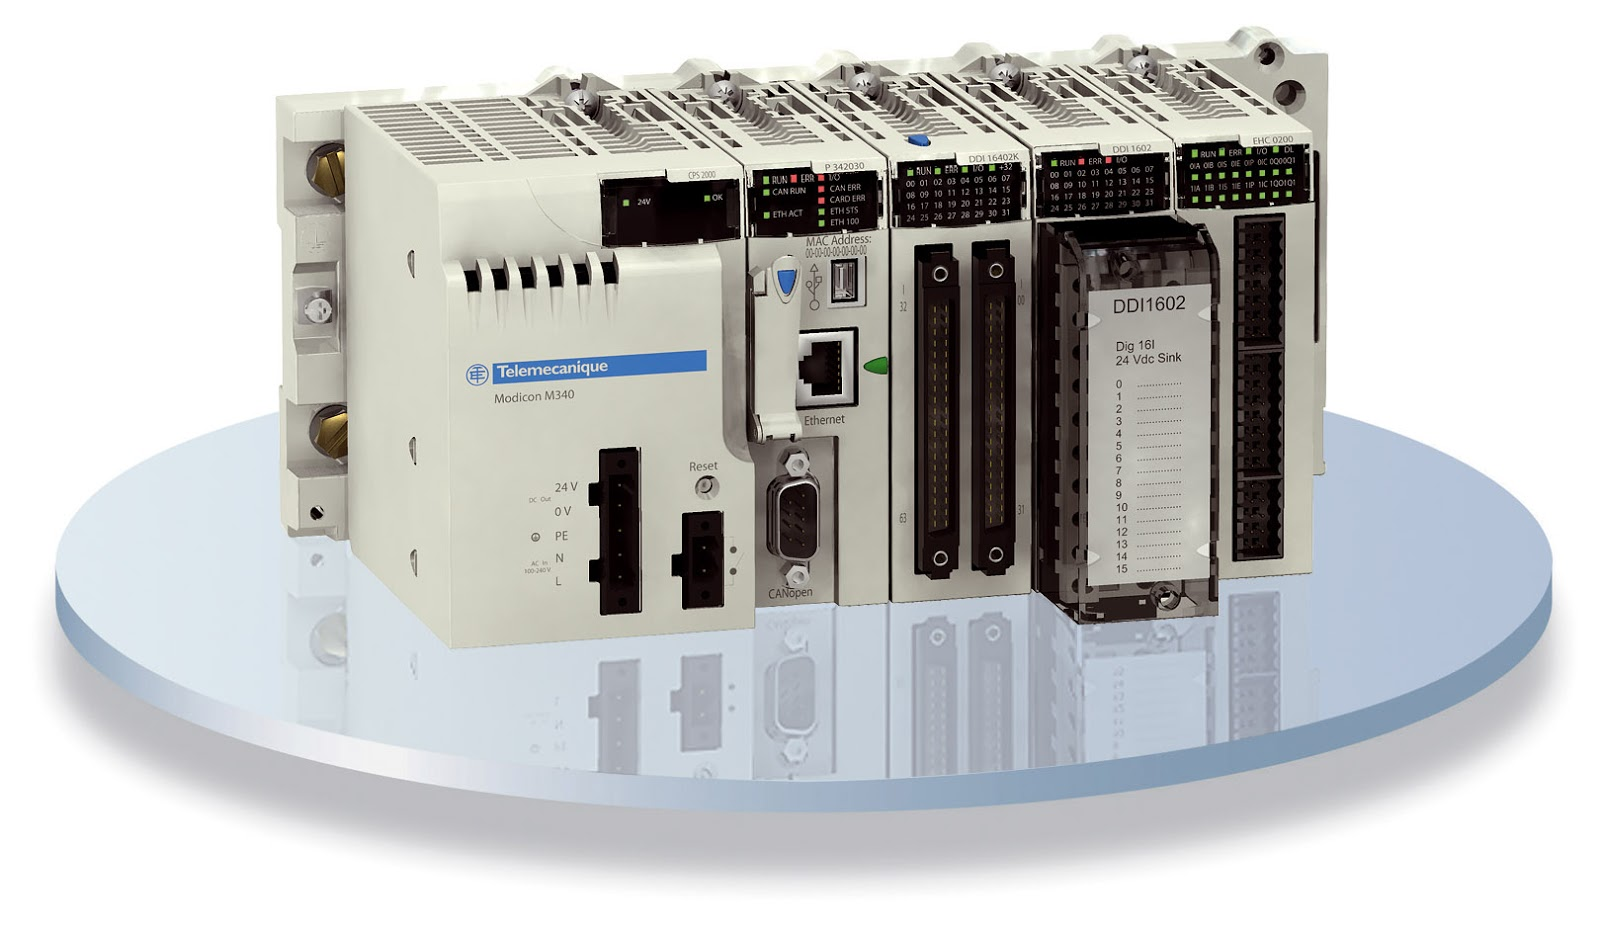 Plc Schneider Electric Modicon M340